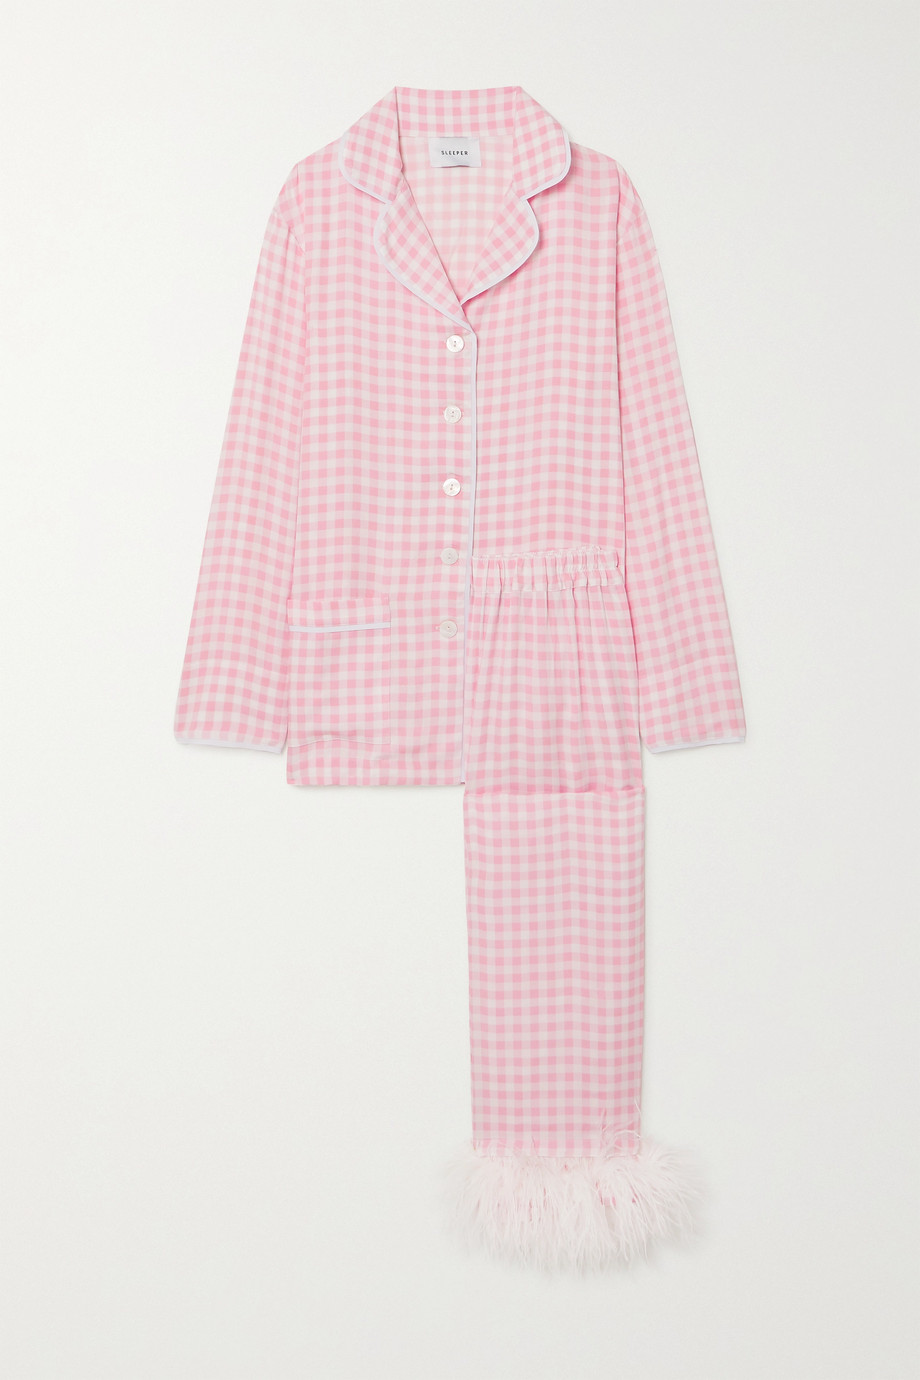 SLEEPER Feather-trimmed gingham crepe de chine pajama set